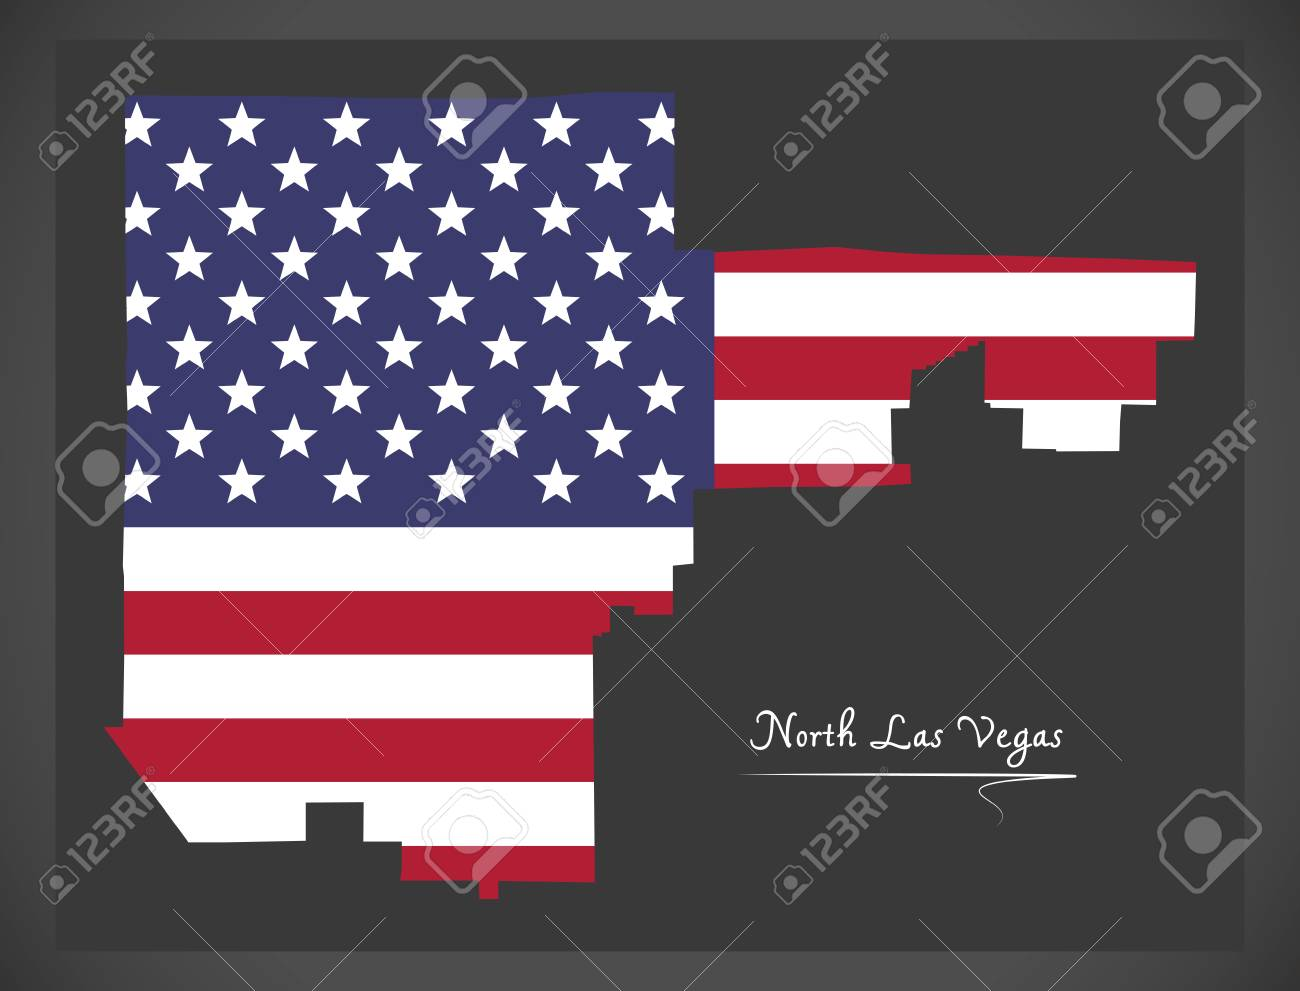 North Las Vegas Nevada City Map With American National Flag ...